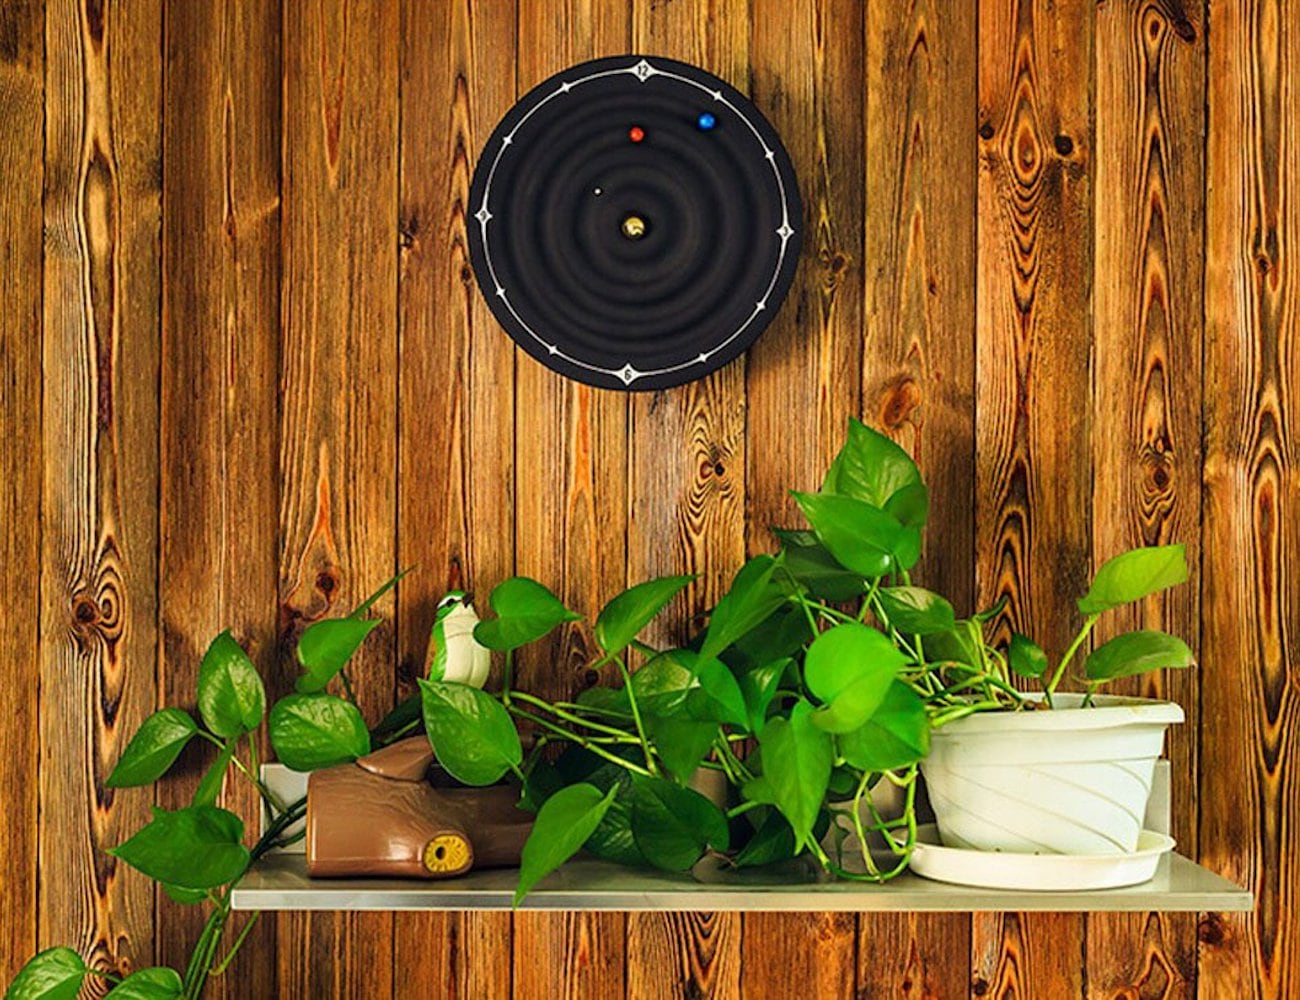 Microtimes Galaxy Magnetic Wall Clock brings the solar system to your home